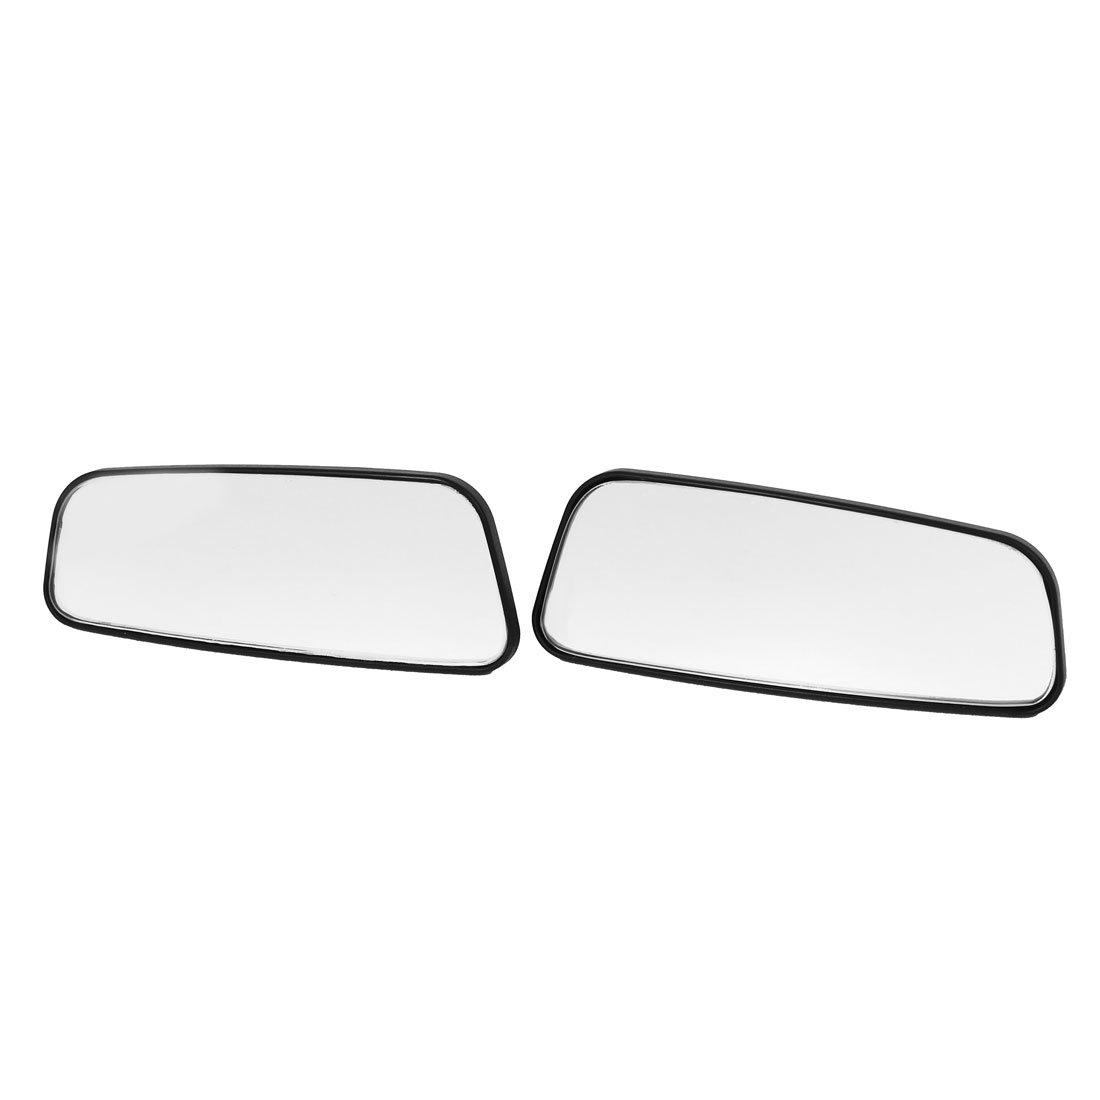 Auto Cars Stick-on Wide Angle Convex Blind Spot Rear View Mirror Black 2pcs